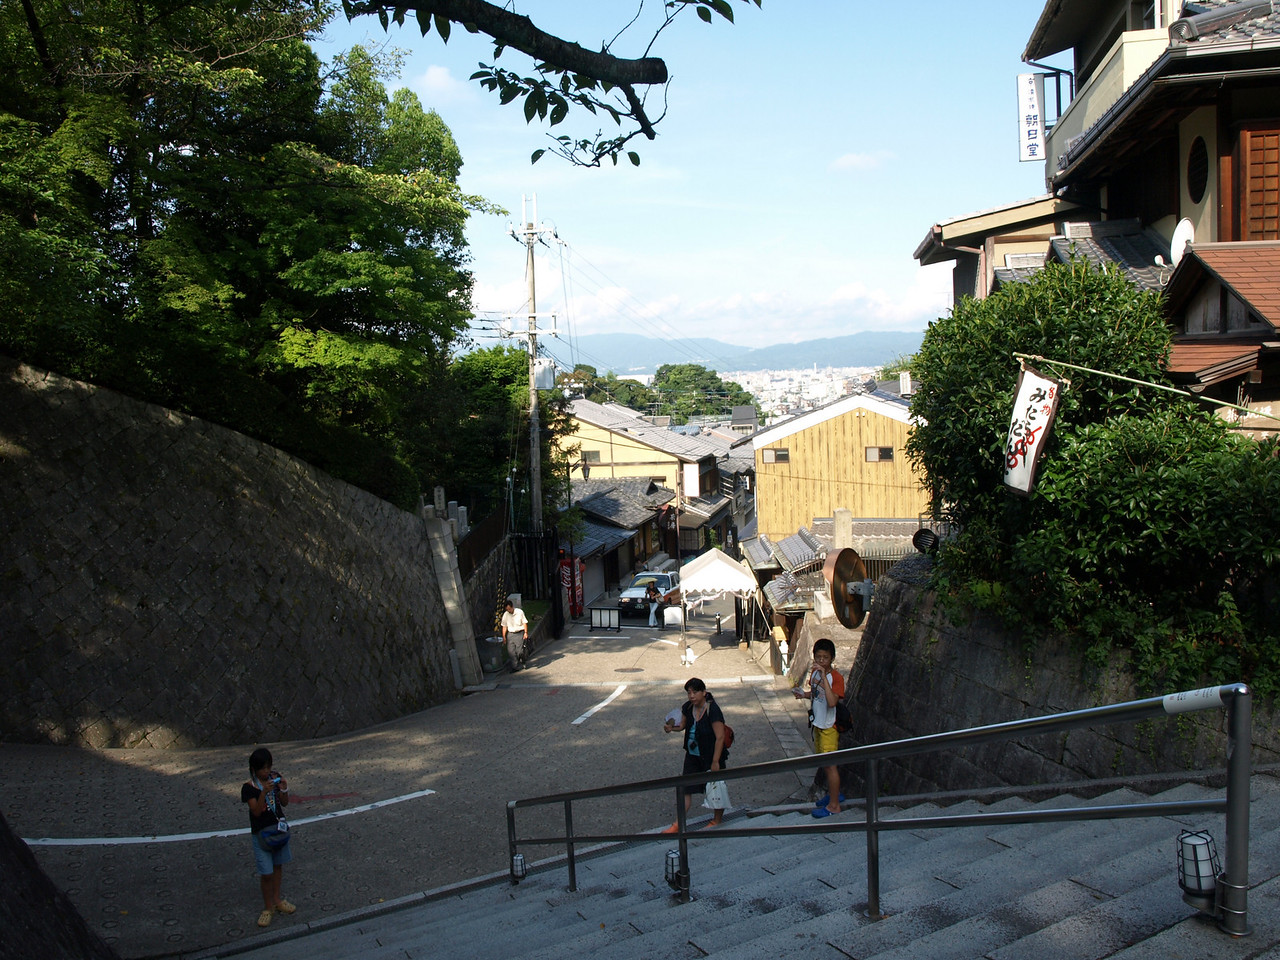 Looking down Kiyomizuzaka Slope with Kyoto off in the distance